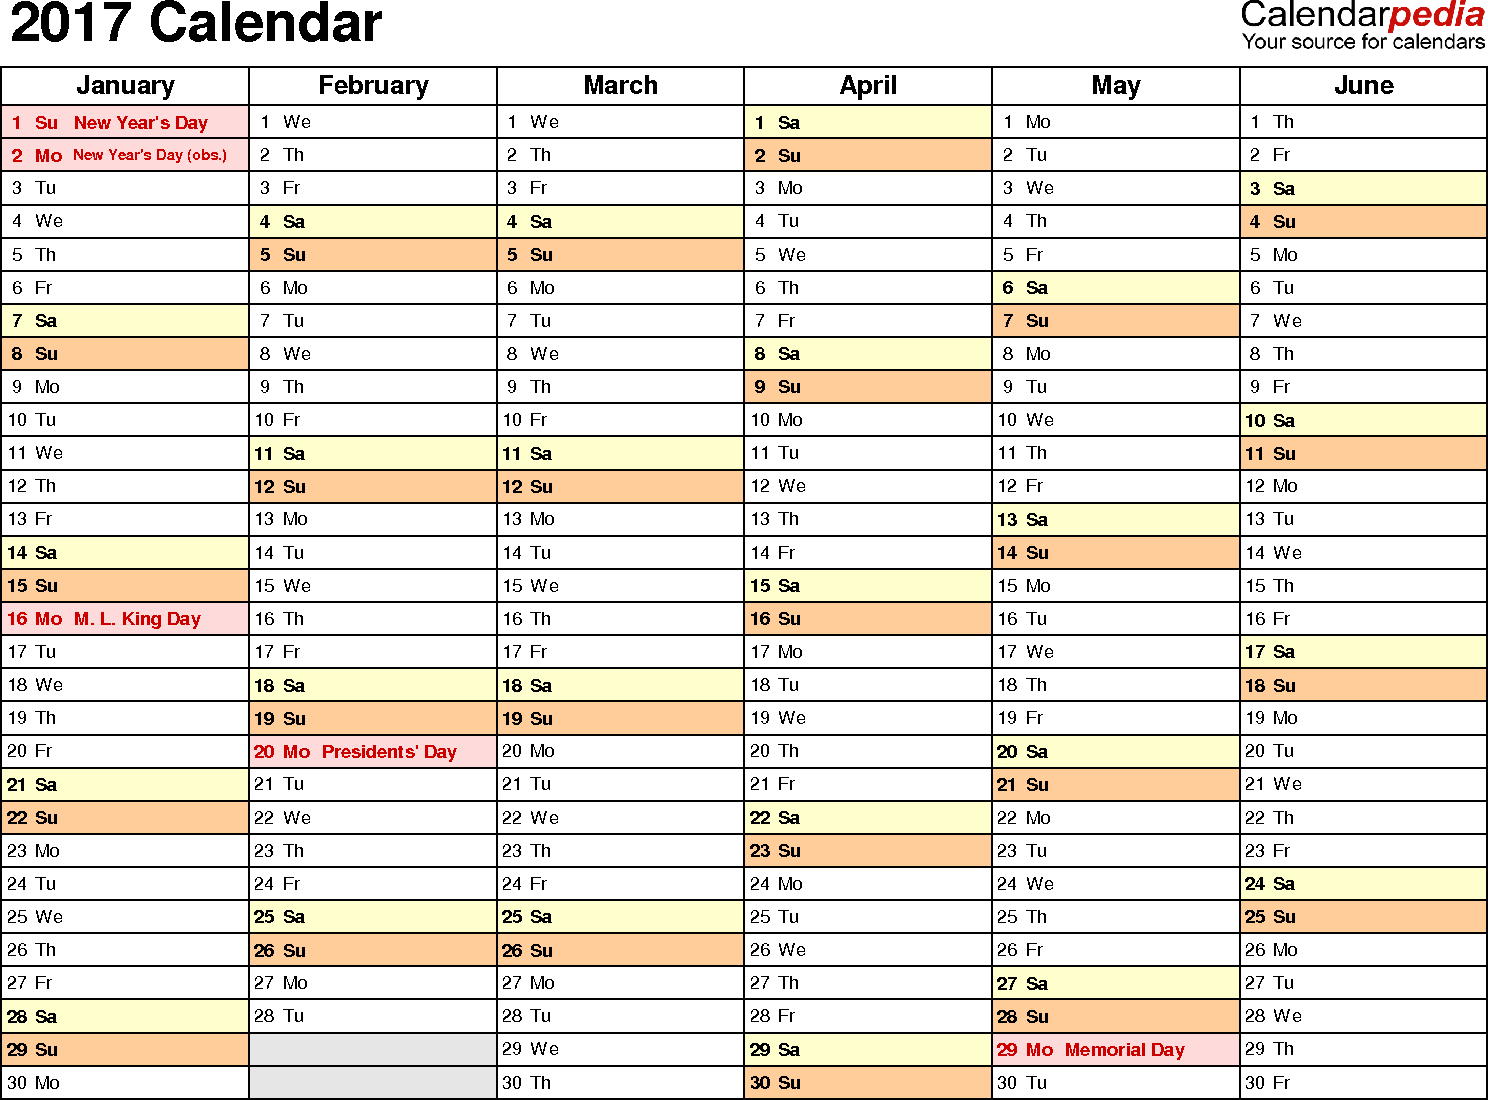 Ediblewildsus  Prepossessing  Calendar  Download  Free Printable Excel Templates Xls With Outstanding Template   Calendar For Excel Months Horizontally  Pages Landscape Orientation With Easy On The Eye Excel Homes Prices Also Hidden Columns In Excel In Addition Excel Financial Formulas And Excel Column To Text As Well As Combine Text Excel Additionally Excel  Vba From Calendarpediacom With Ediblewildsus  Outstanding  Calendar  Download  Free Printable Excel Templates Xls With Easy On The Eye Template   Calendar For Excel Months Horizontally  Pages Landscape Orientation And Prepossessing Excel Homes Prices Also Hidden Columns In Excel In Addition Excel Financial Formulas From Calendarpediacom